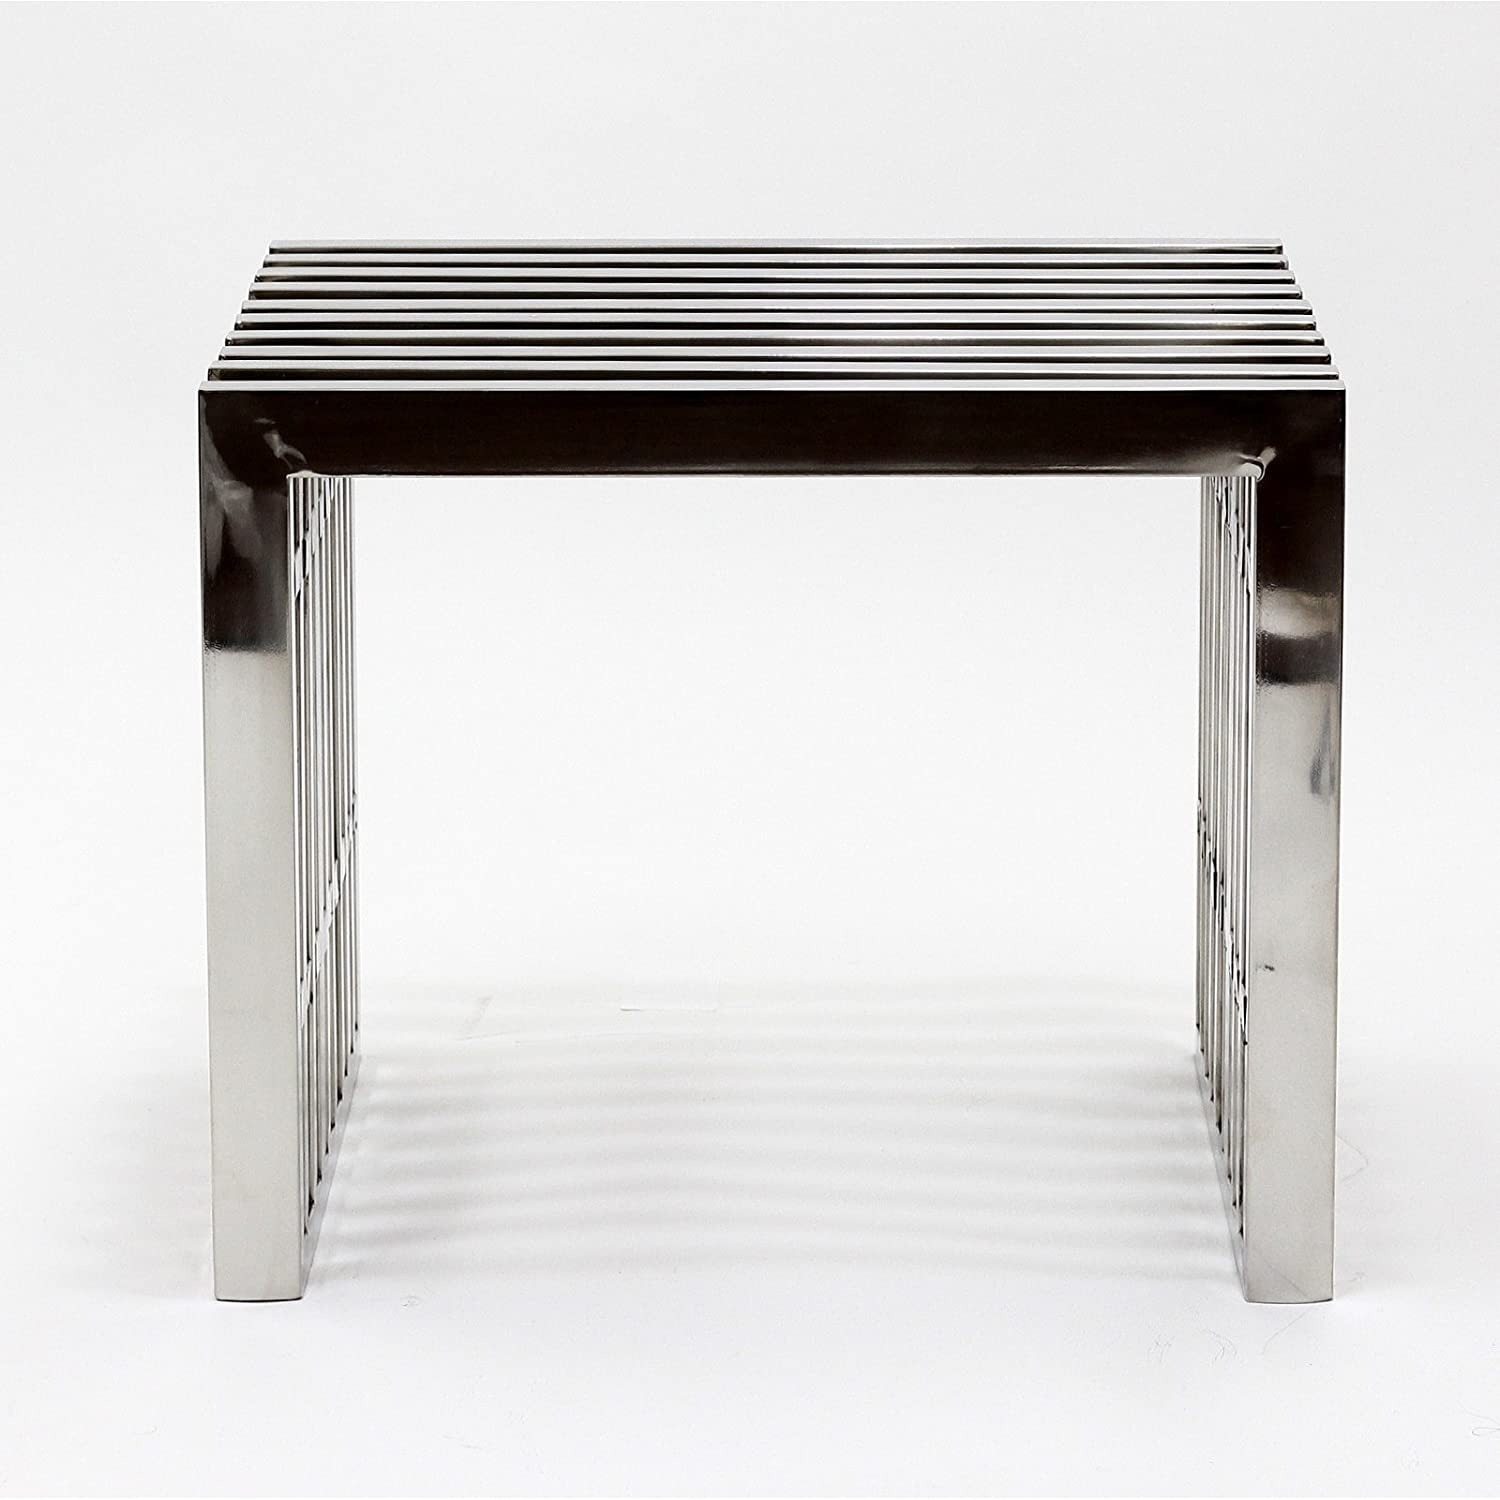 Bench In Silver Small Stainless Steel Finish - image-1